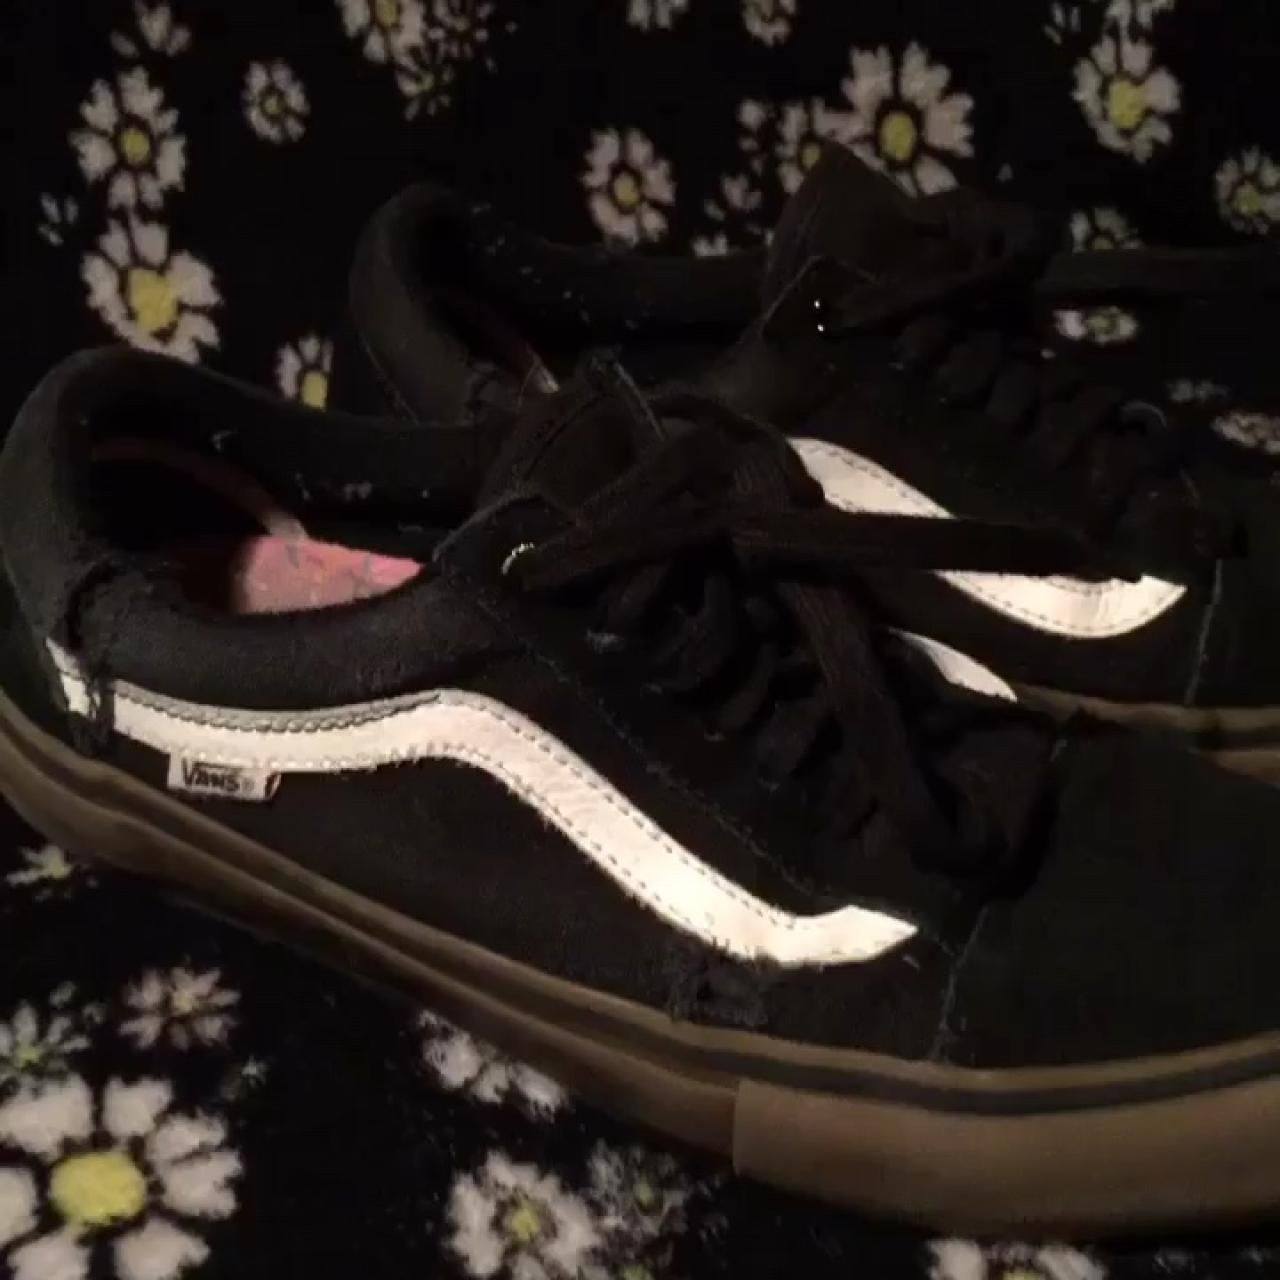 ea04d4a84c VANS OLD SKOOL PRO I ve had these sitting in my closet for - Depop